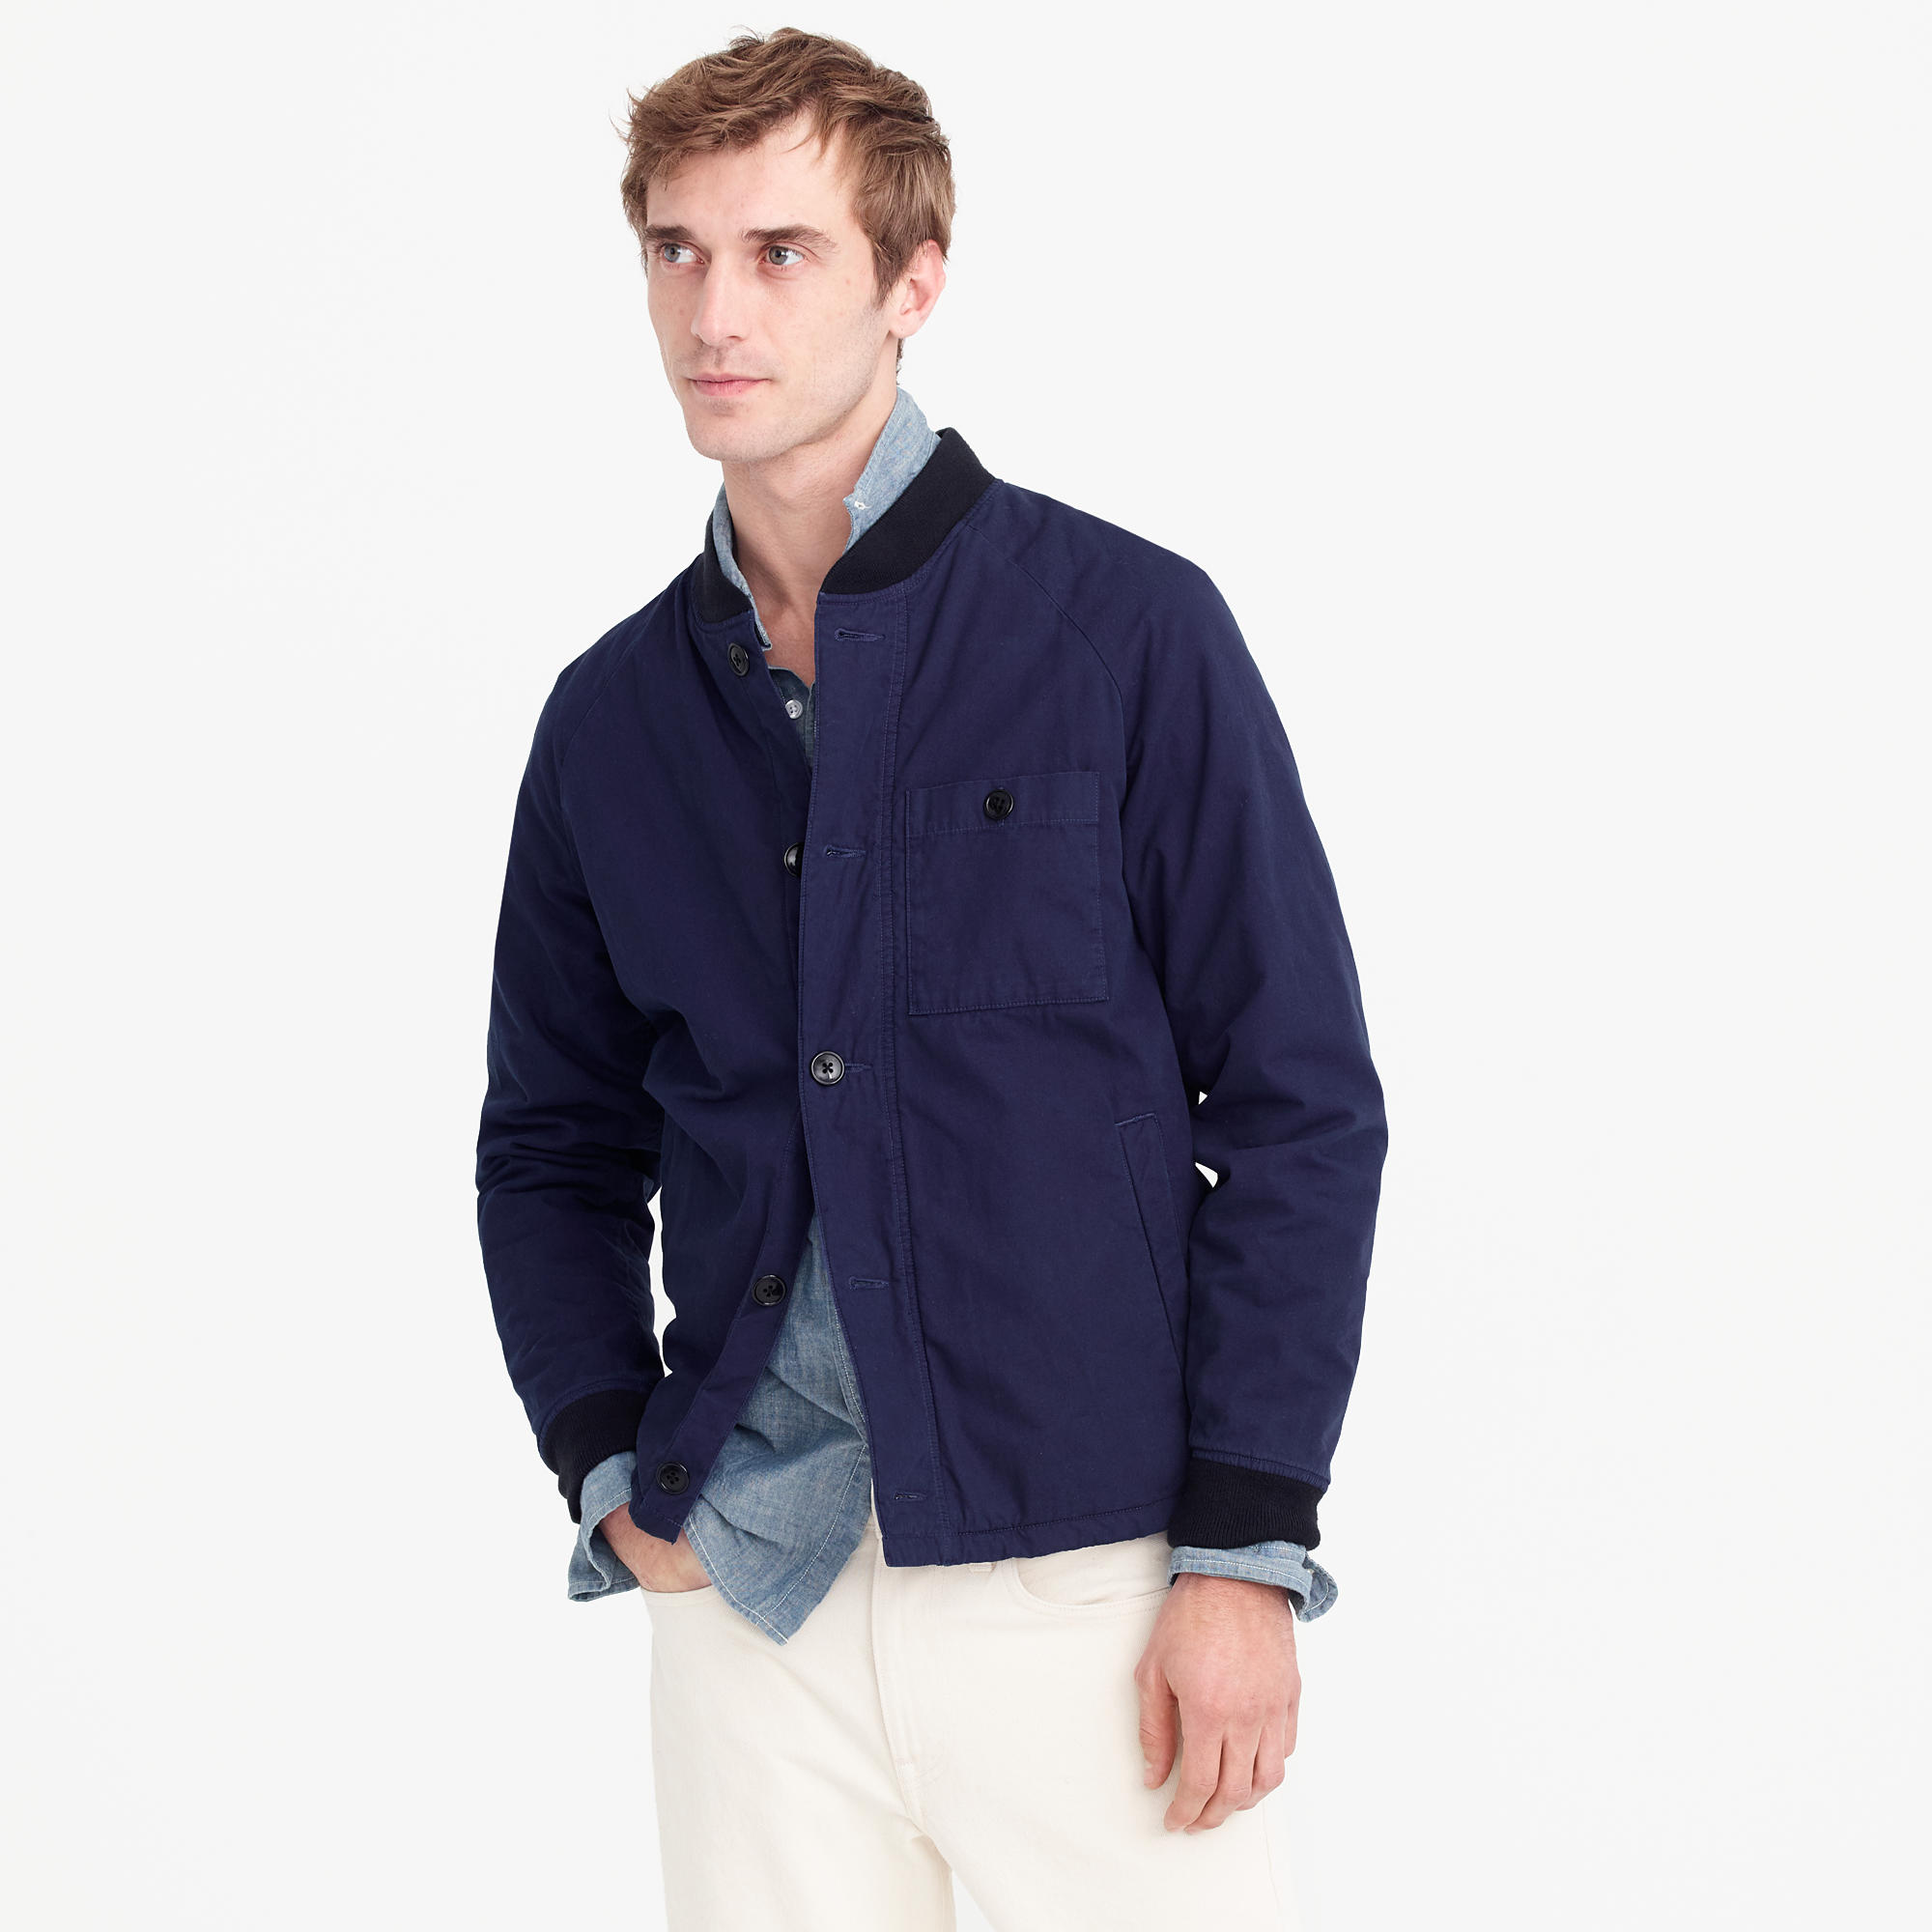 Men&39s Jackets Trench Coats &amp Vests : Men&39s Outerwear | J.Crew